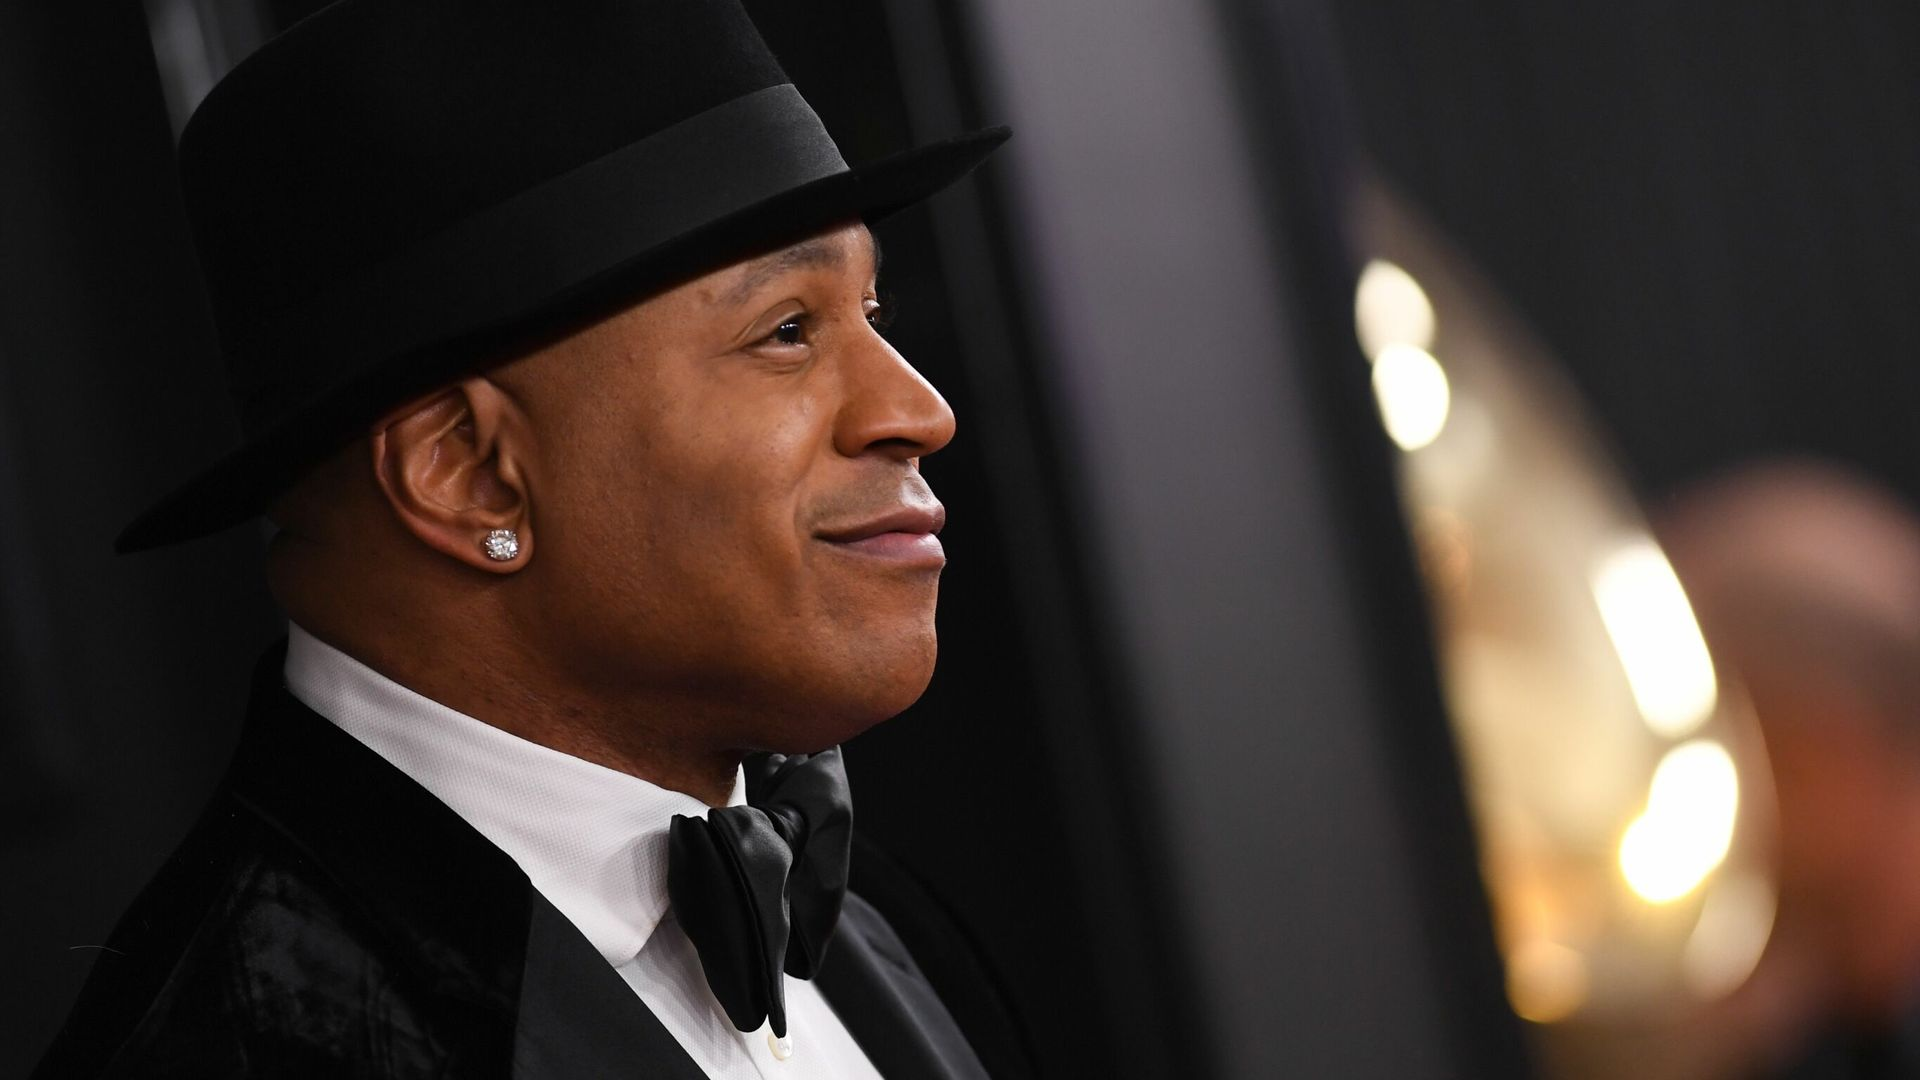 LL Cool J reveals he is a Leeds United supporter - sky sports